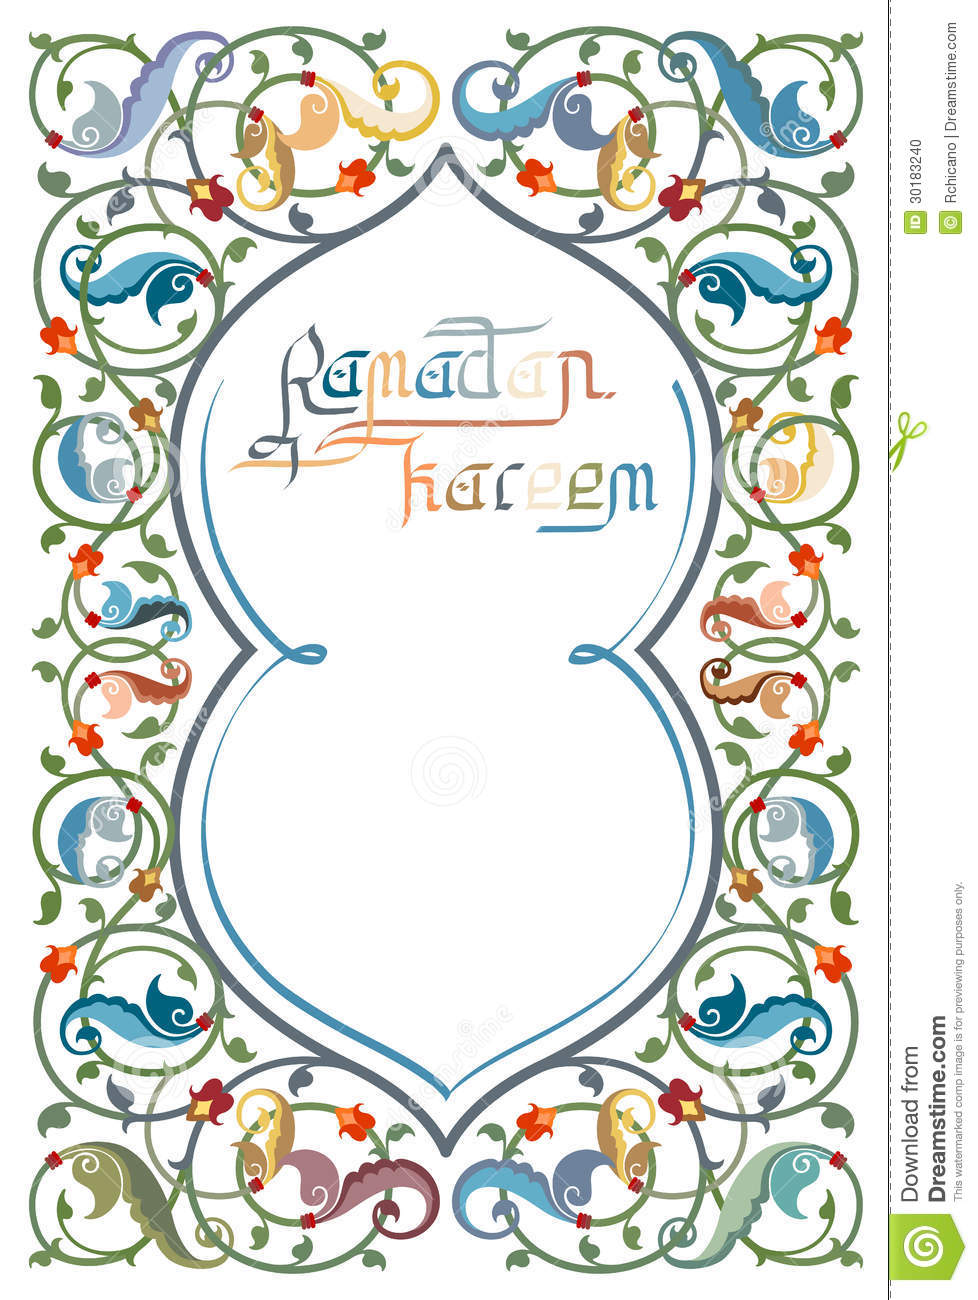 ... with Ramadan Kareem calligraphy in islamic floral art frame (EPS10